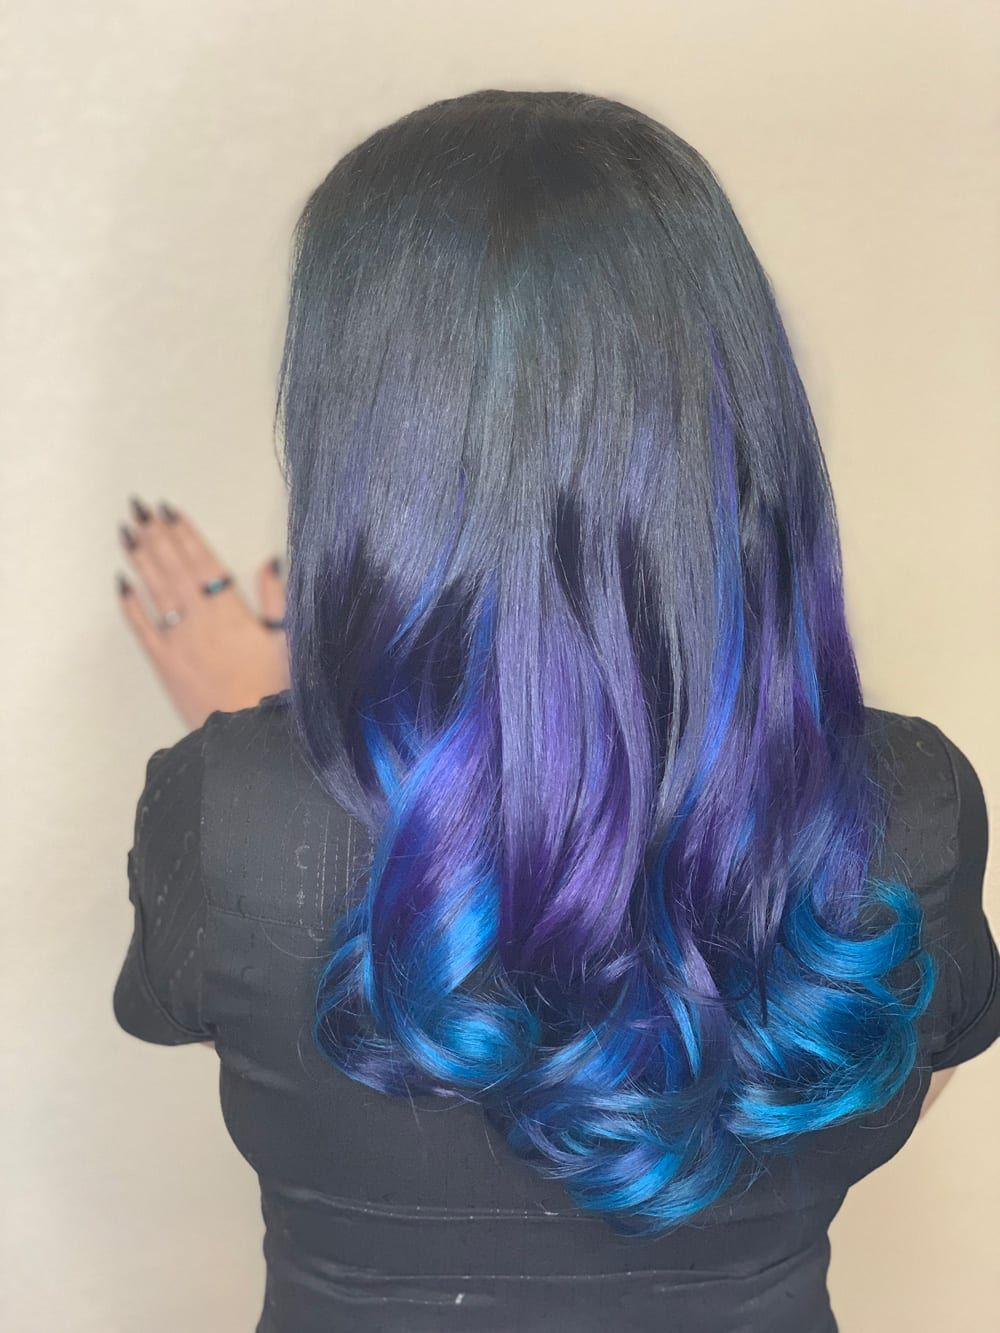 Courtney has Pulp Riot Noir, Jam and Nirvana in her hair